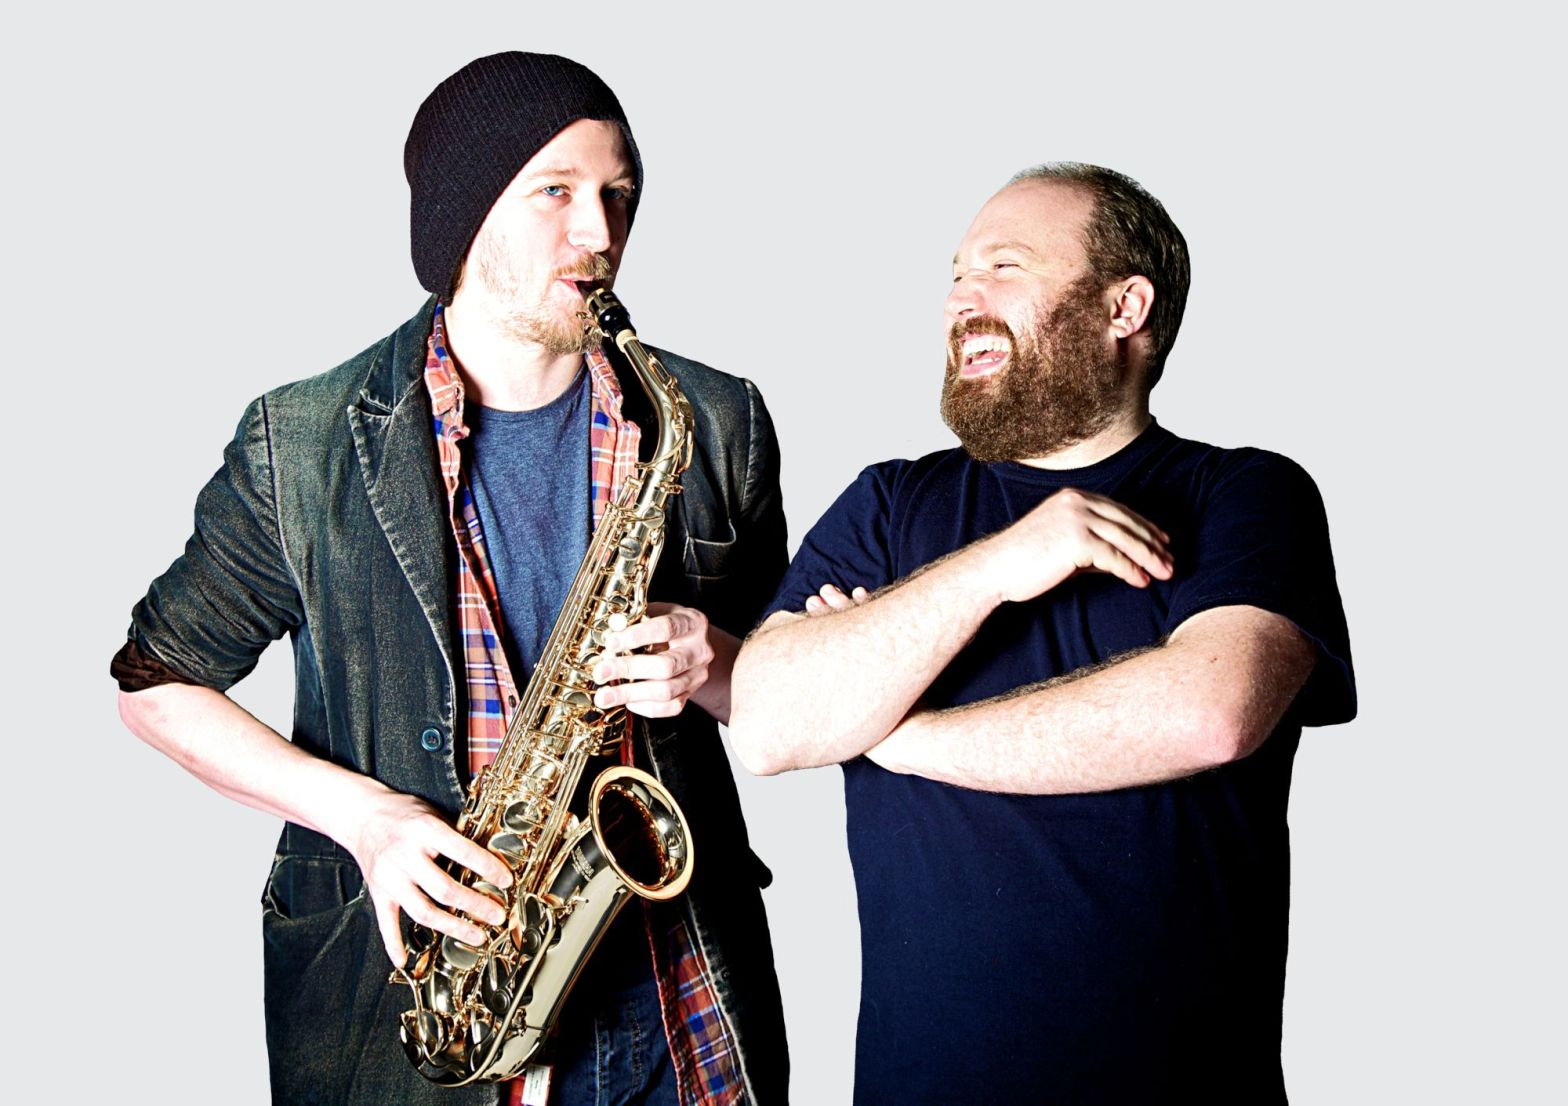 Paddy Gervers plays a saxophone while Jonny Donahoe laughs